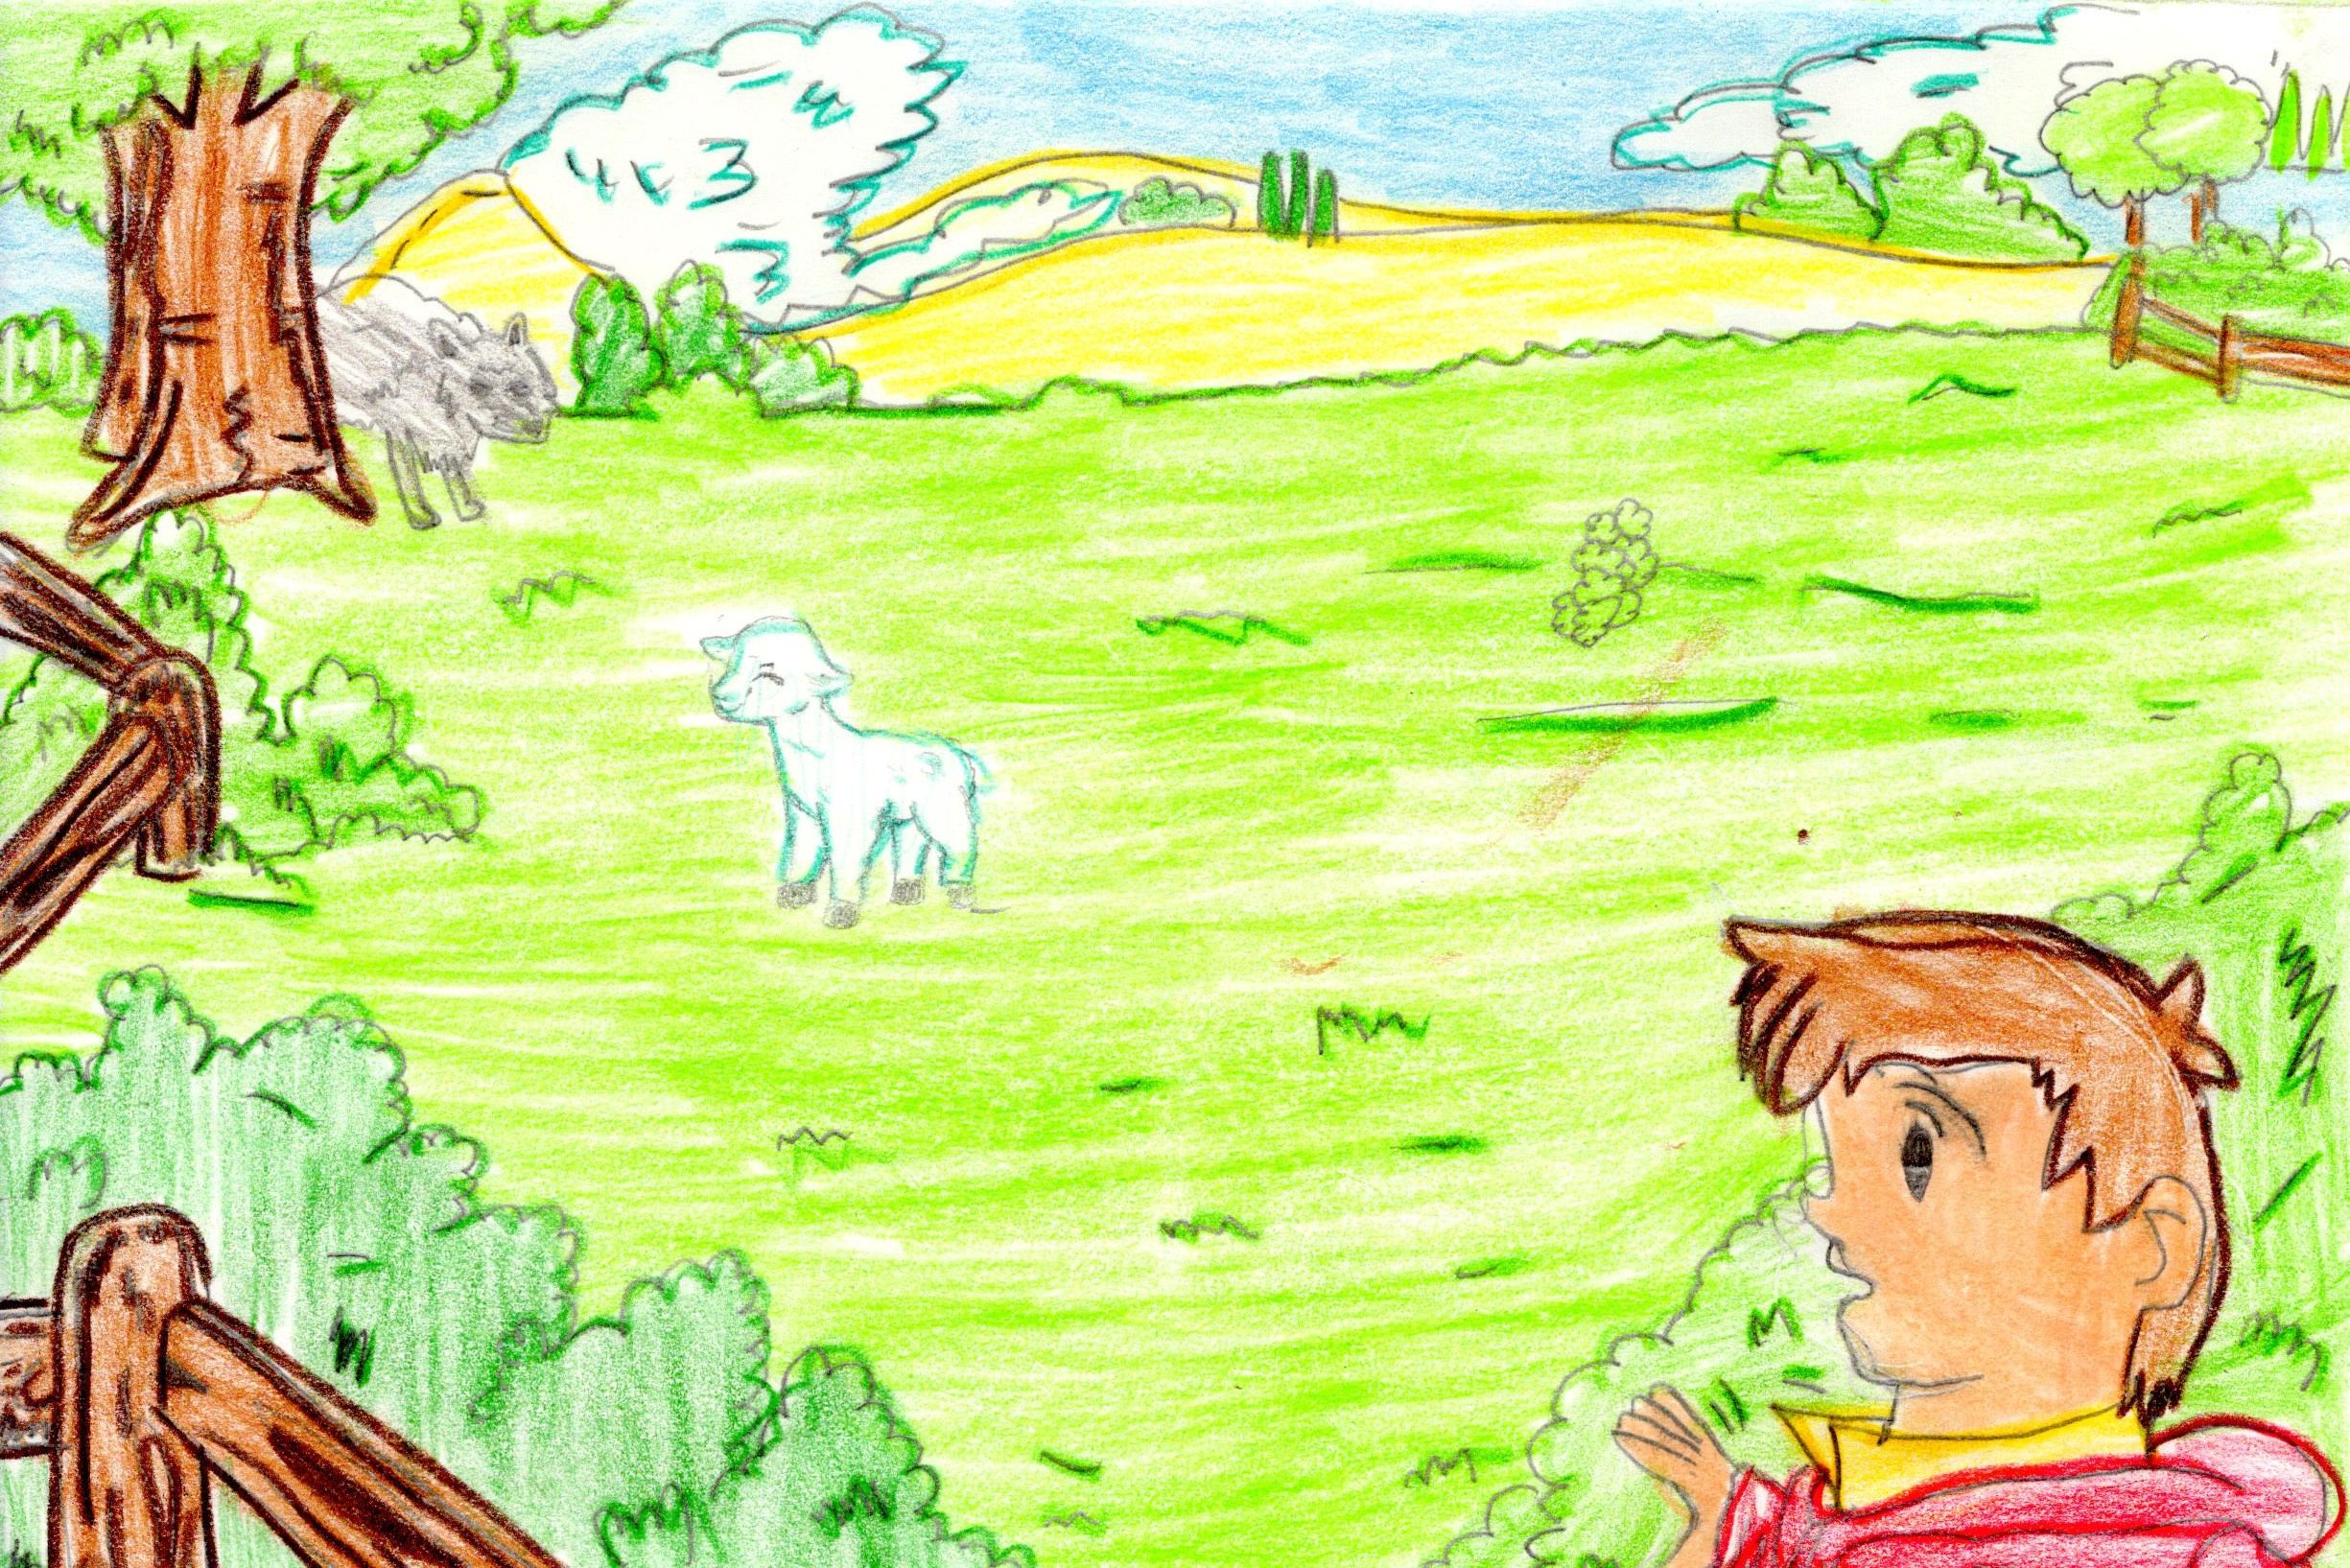 Artwork from the book - THE BOY AND THE WOLF by maria concetta marinelli - Illustrated by Maria Concetta Marinelli- Gina Tullo - Ourboox.com